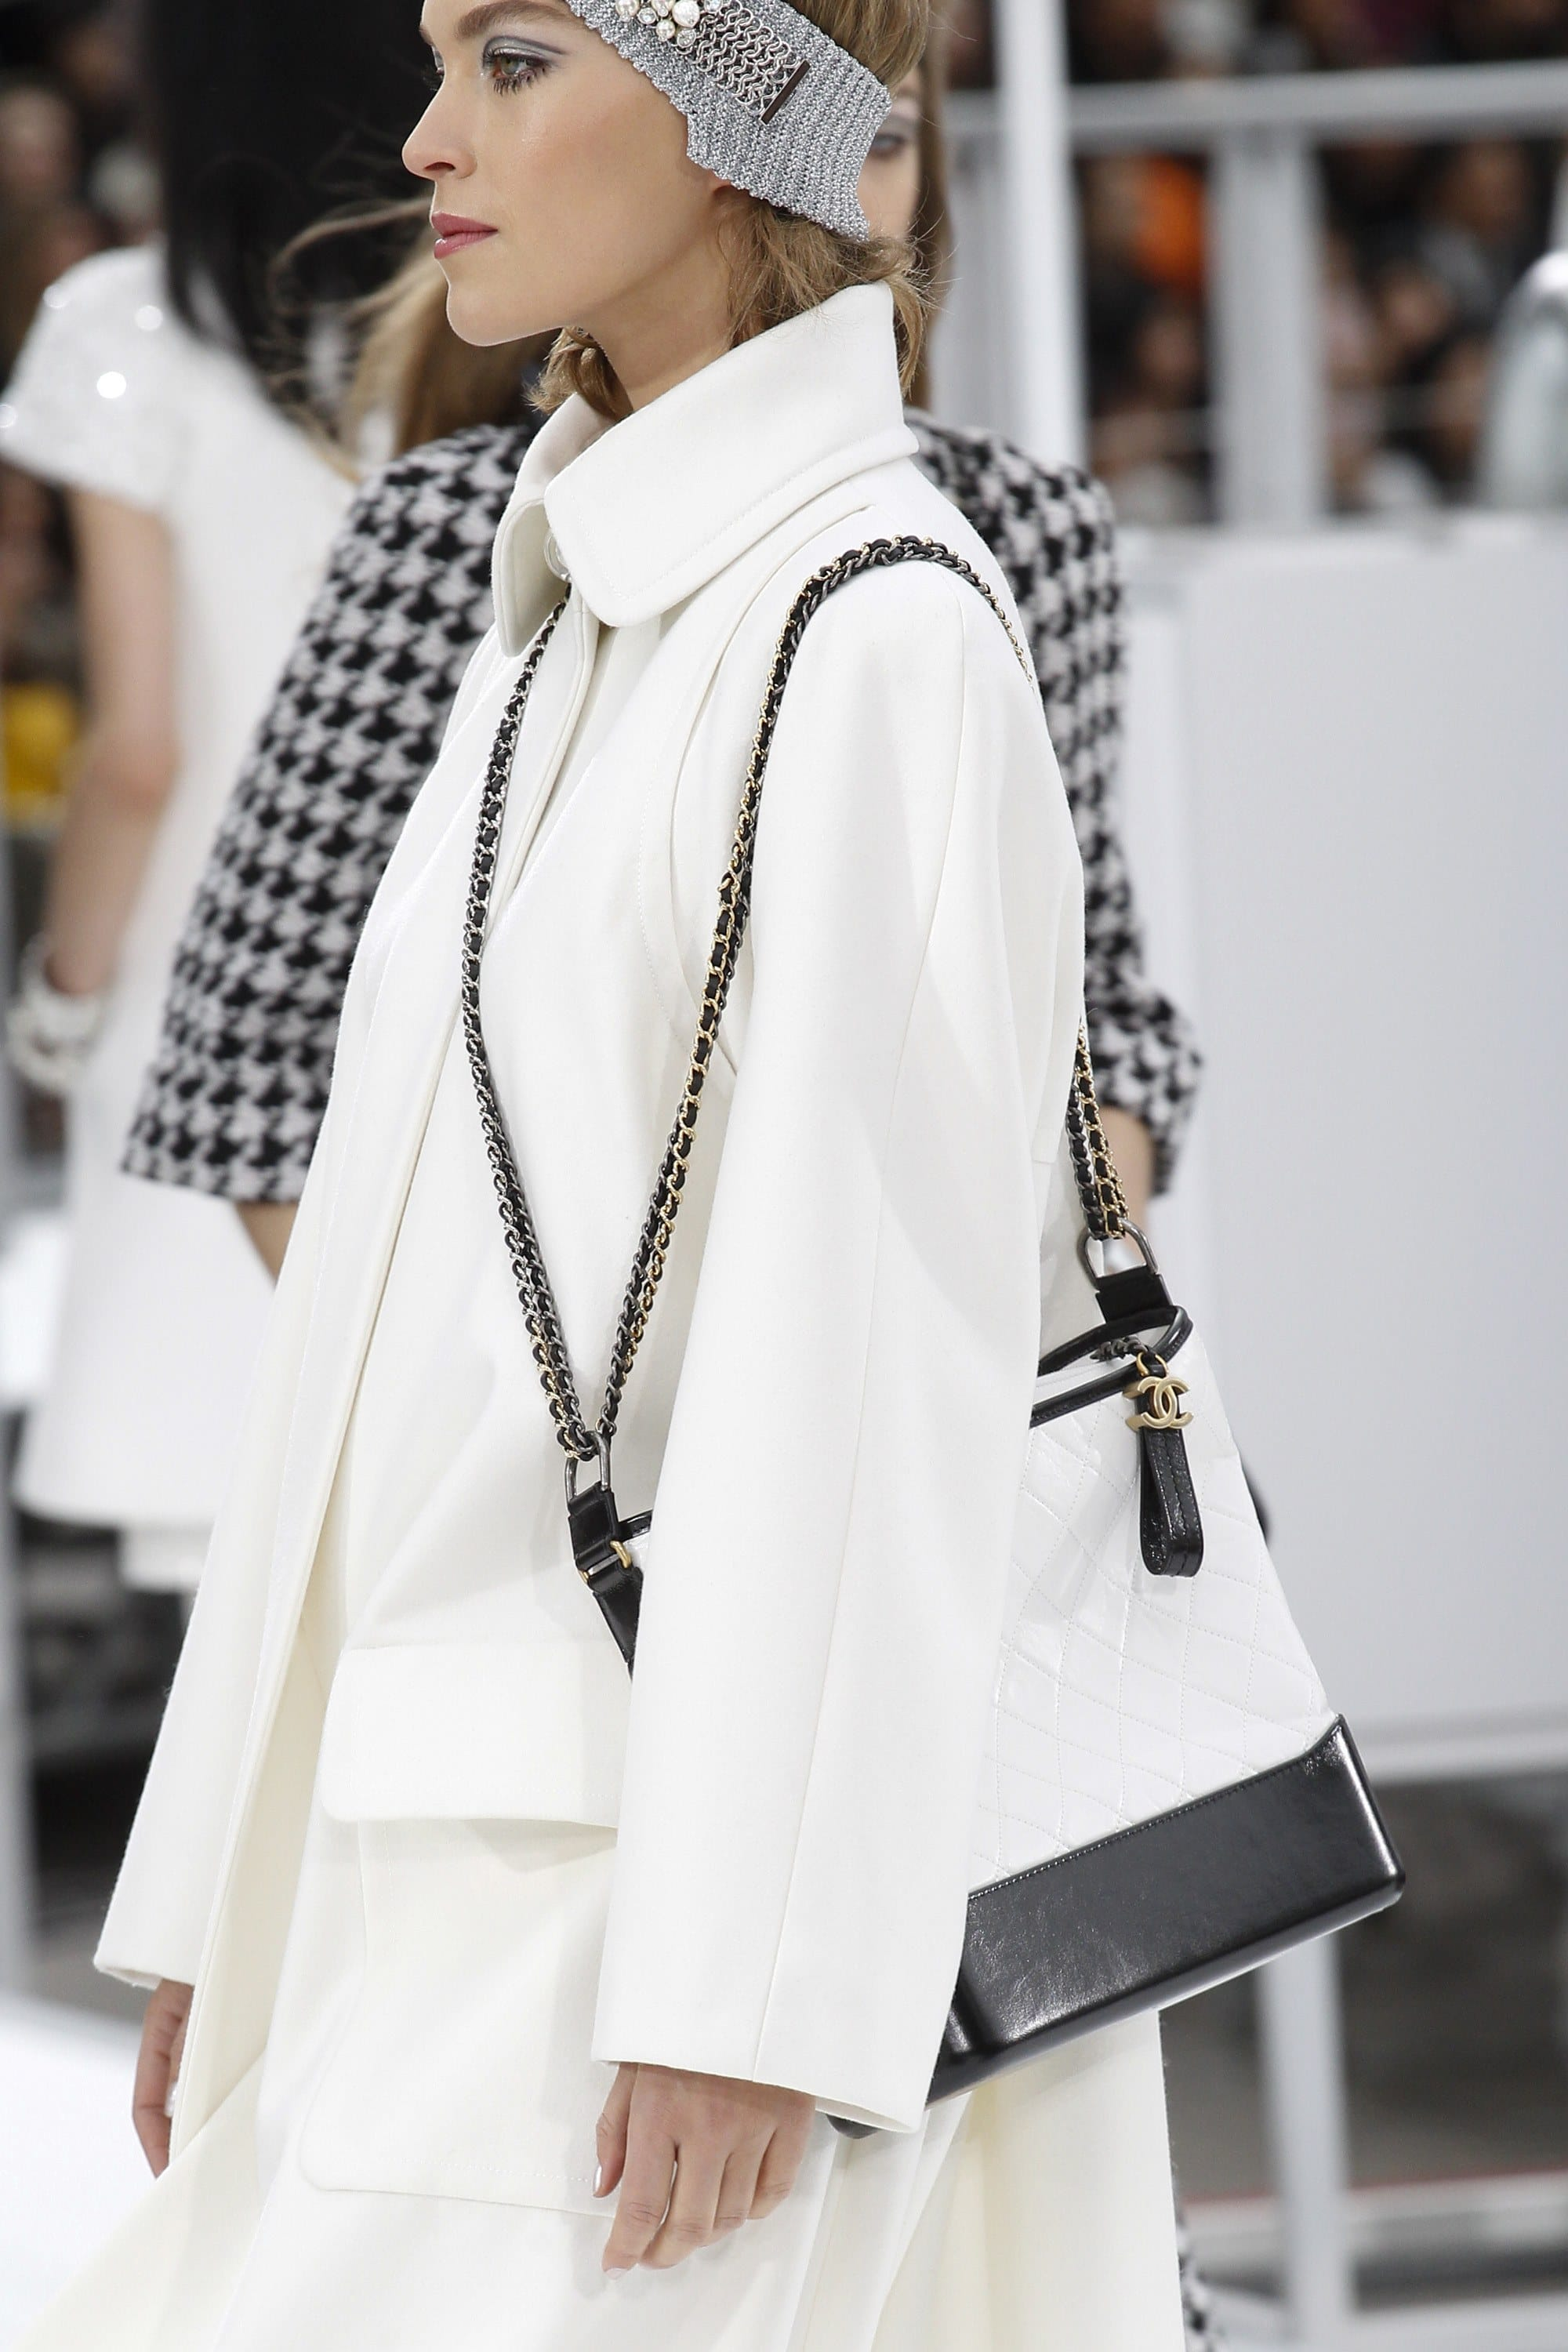 Chanel Fall/Winter 2017 Runway Bag Collection